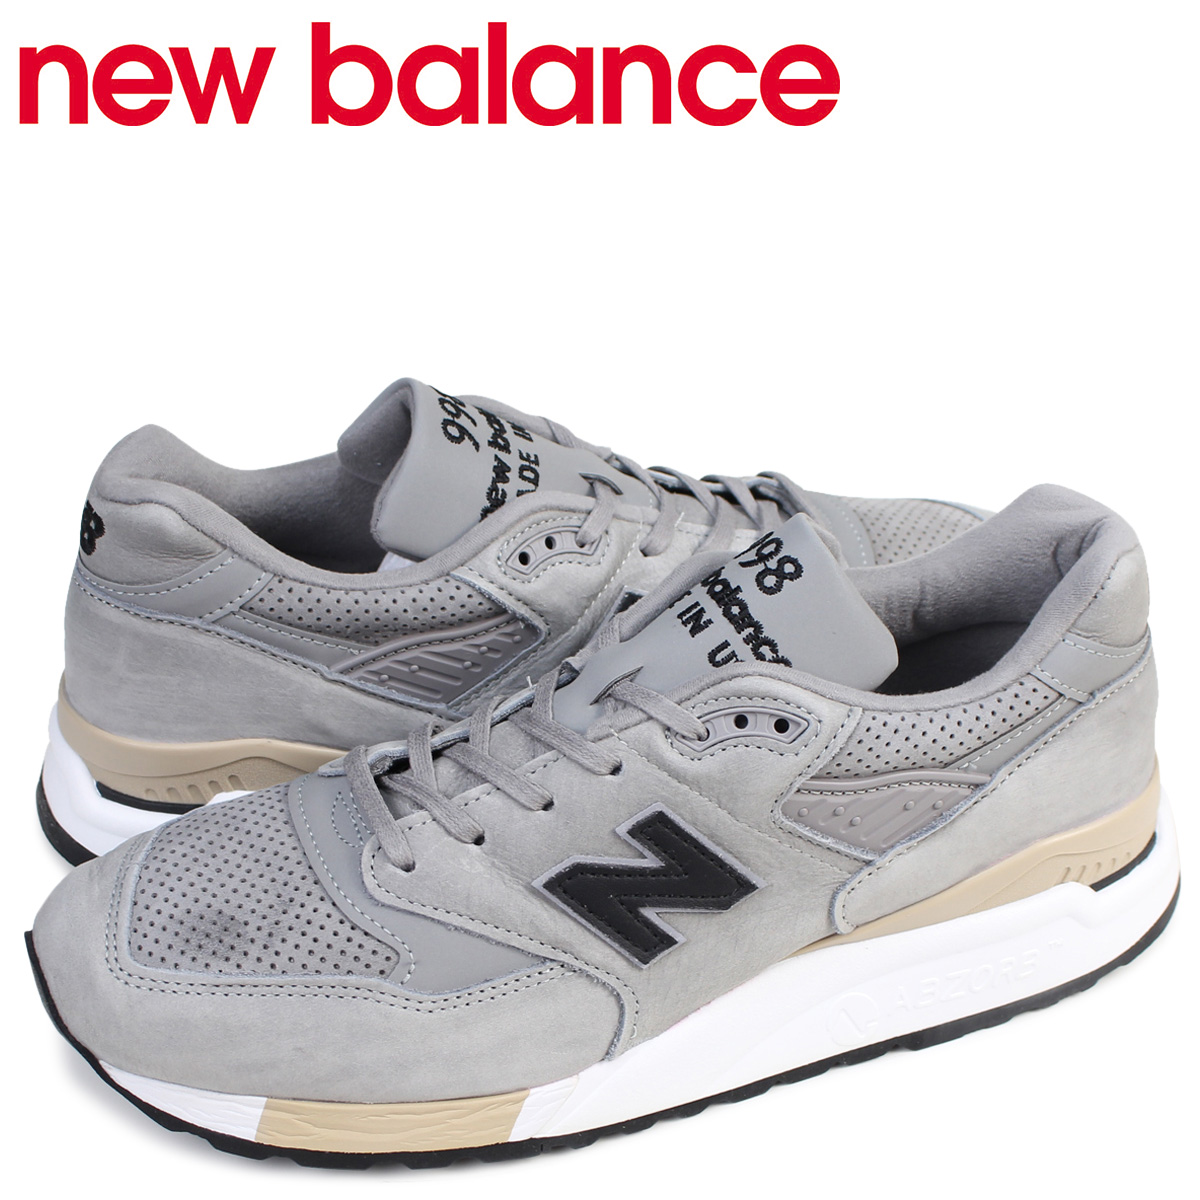 bfba46d9f994 ALLSPORTS  new balance 998 men s New Balance sneakers M998DTK D Wise shoes  gray  175